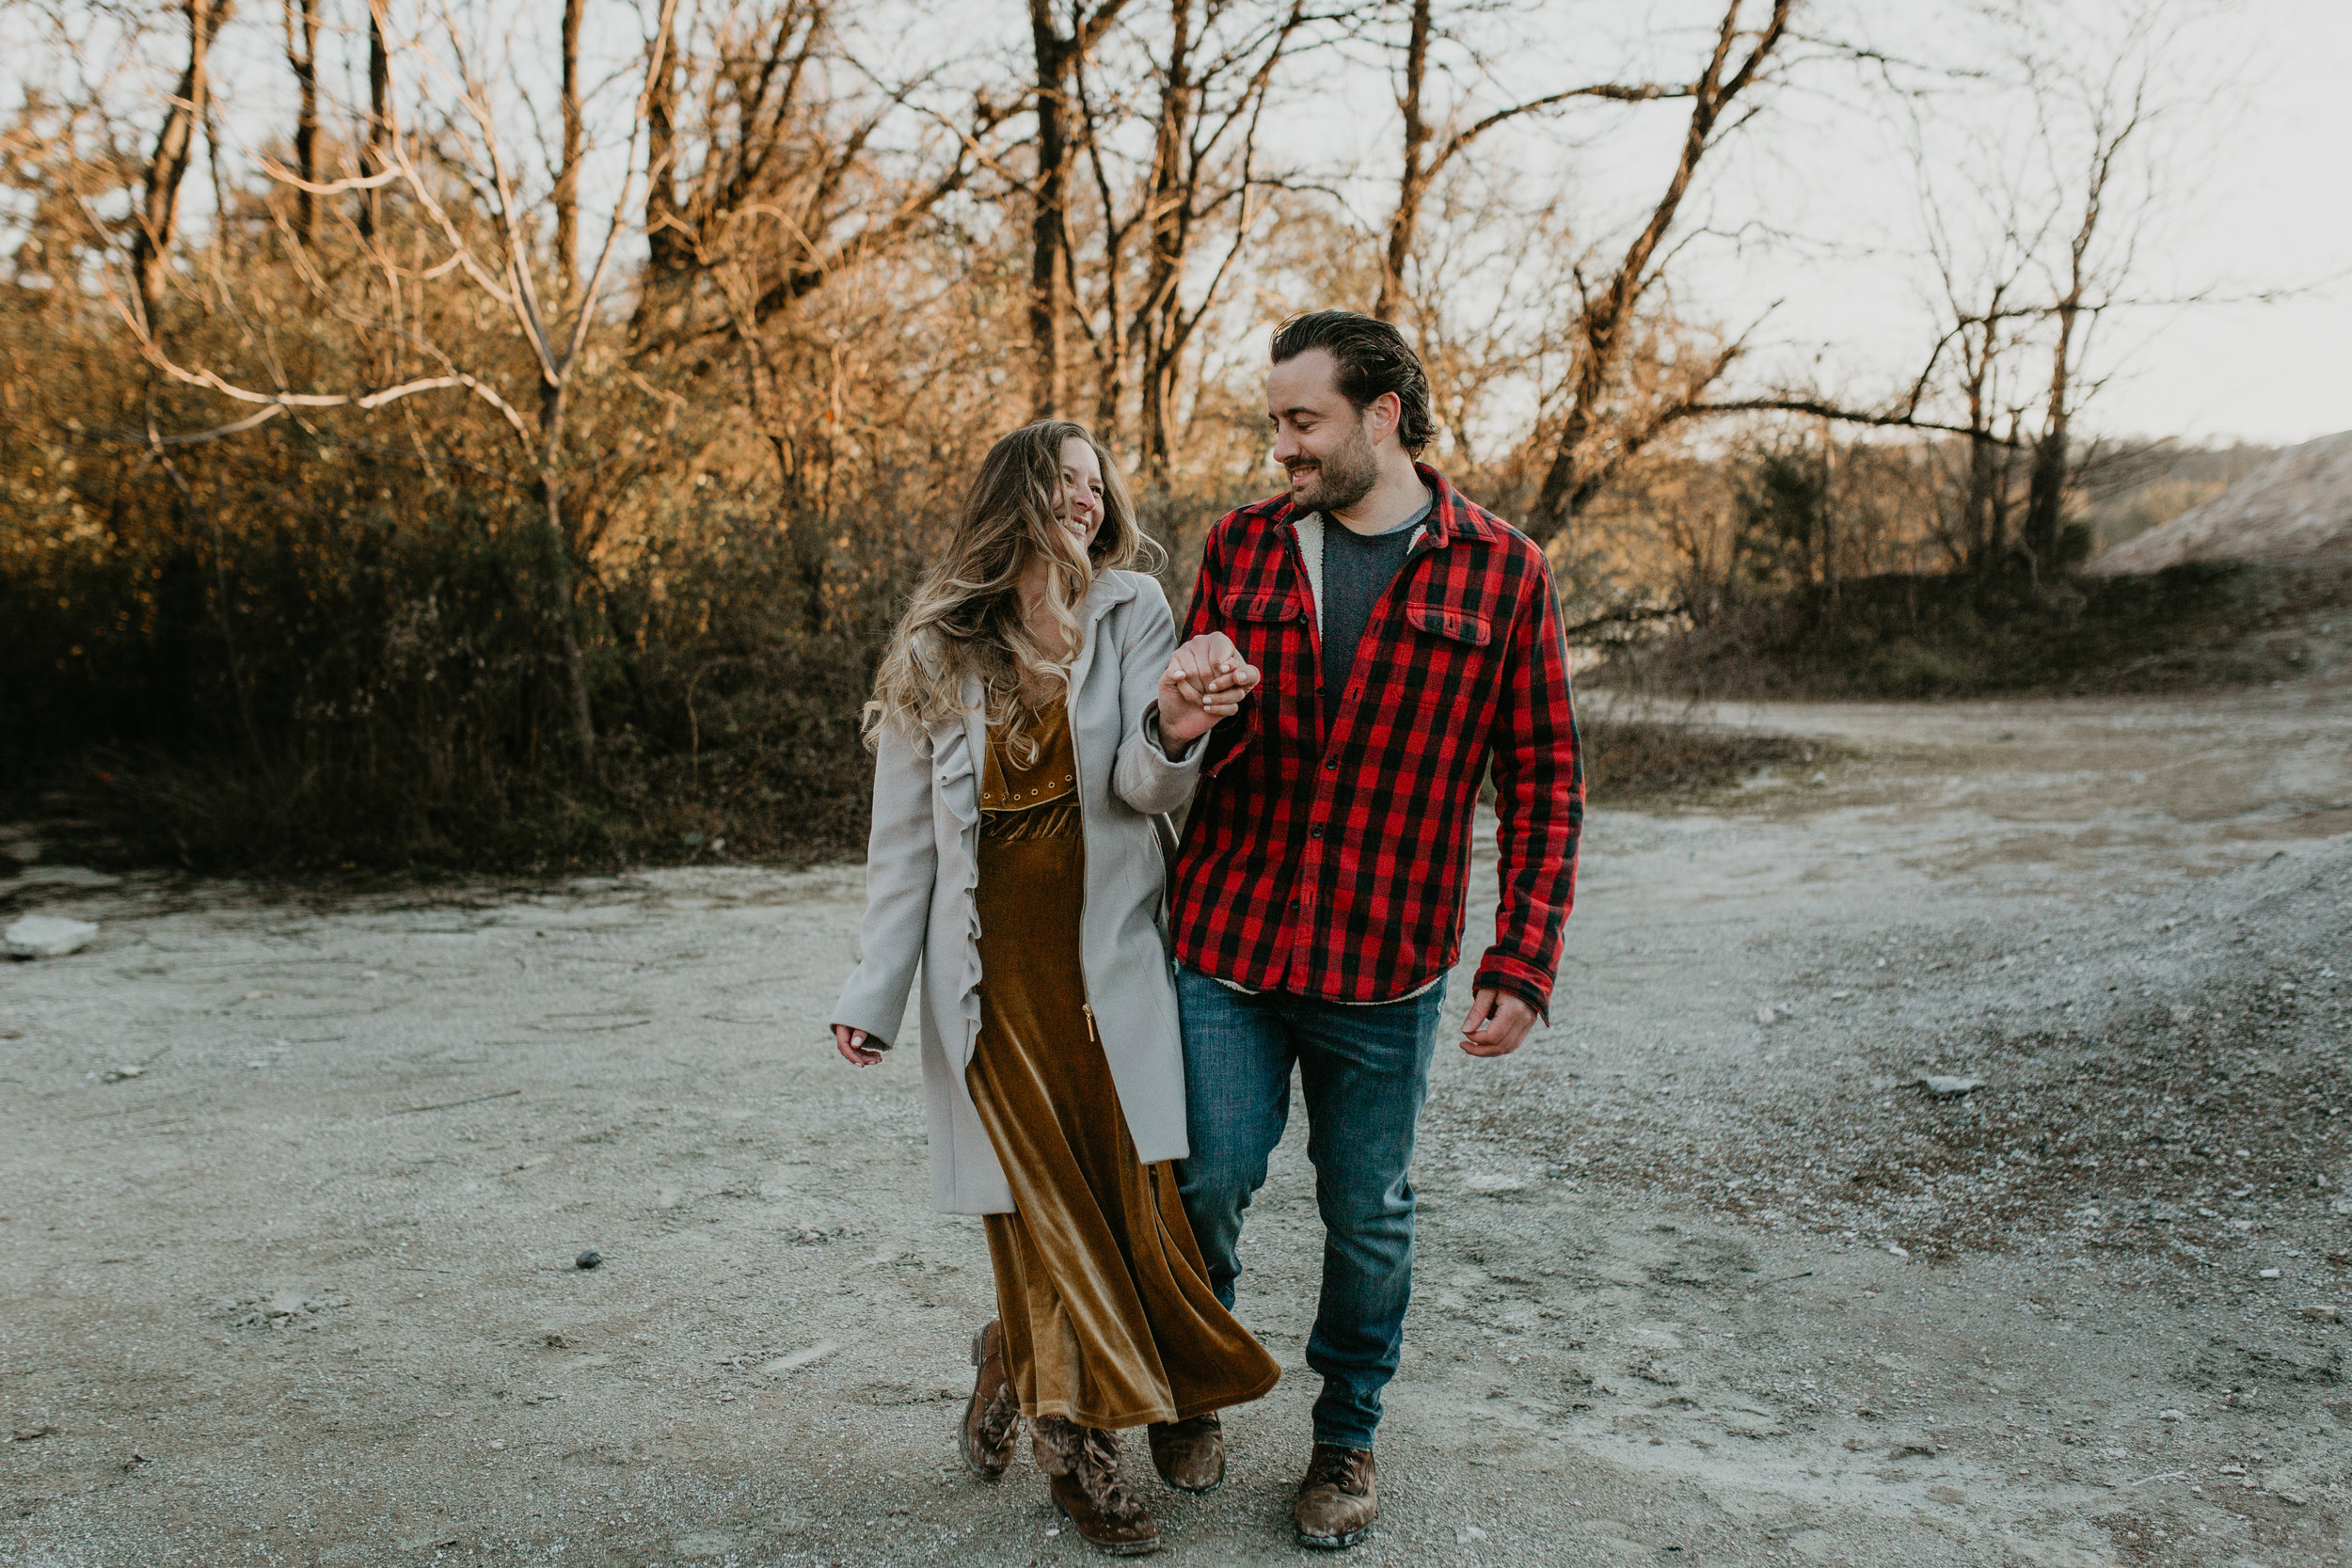 nicole-daacke-photography-white-cliffs-of-conoy-in-lancaster-pa-pennsylvania-adventure-session-adventure-elopement-photographer-engagement session-in-lancaster-pa-photographer-golden-sunset-winter-solstice-wedding-riverside-elopement-4097.jpg